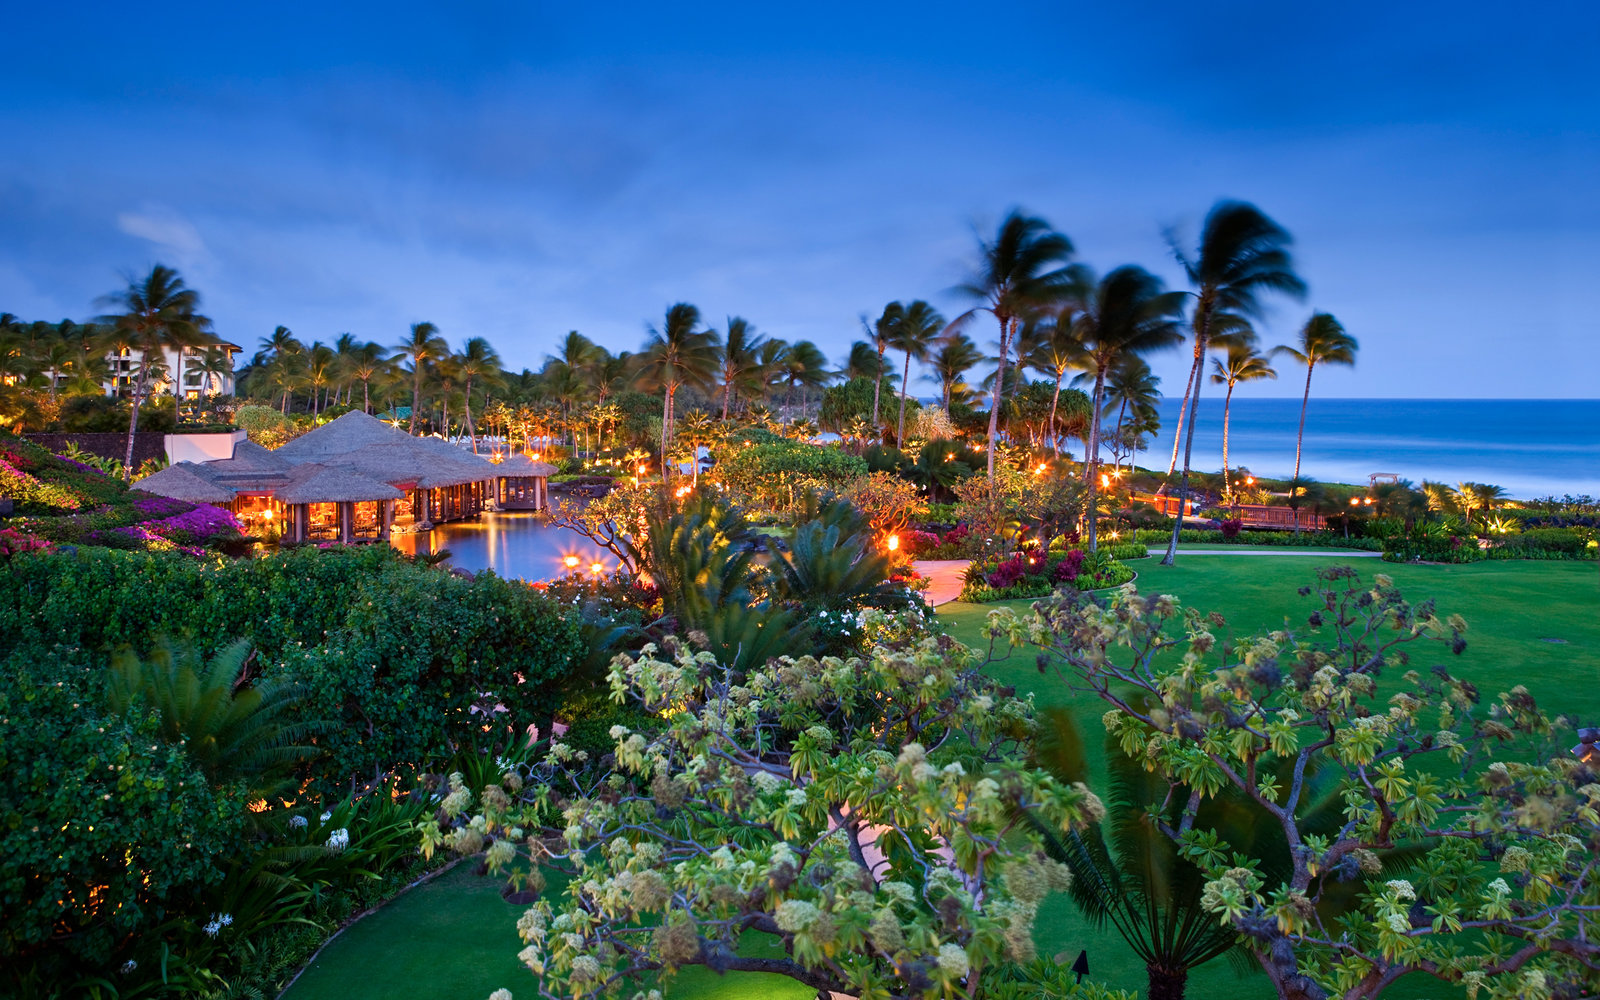 Grand Hyatt Kauai Resort and Spa, Kauai, Hawaii